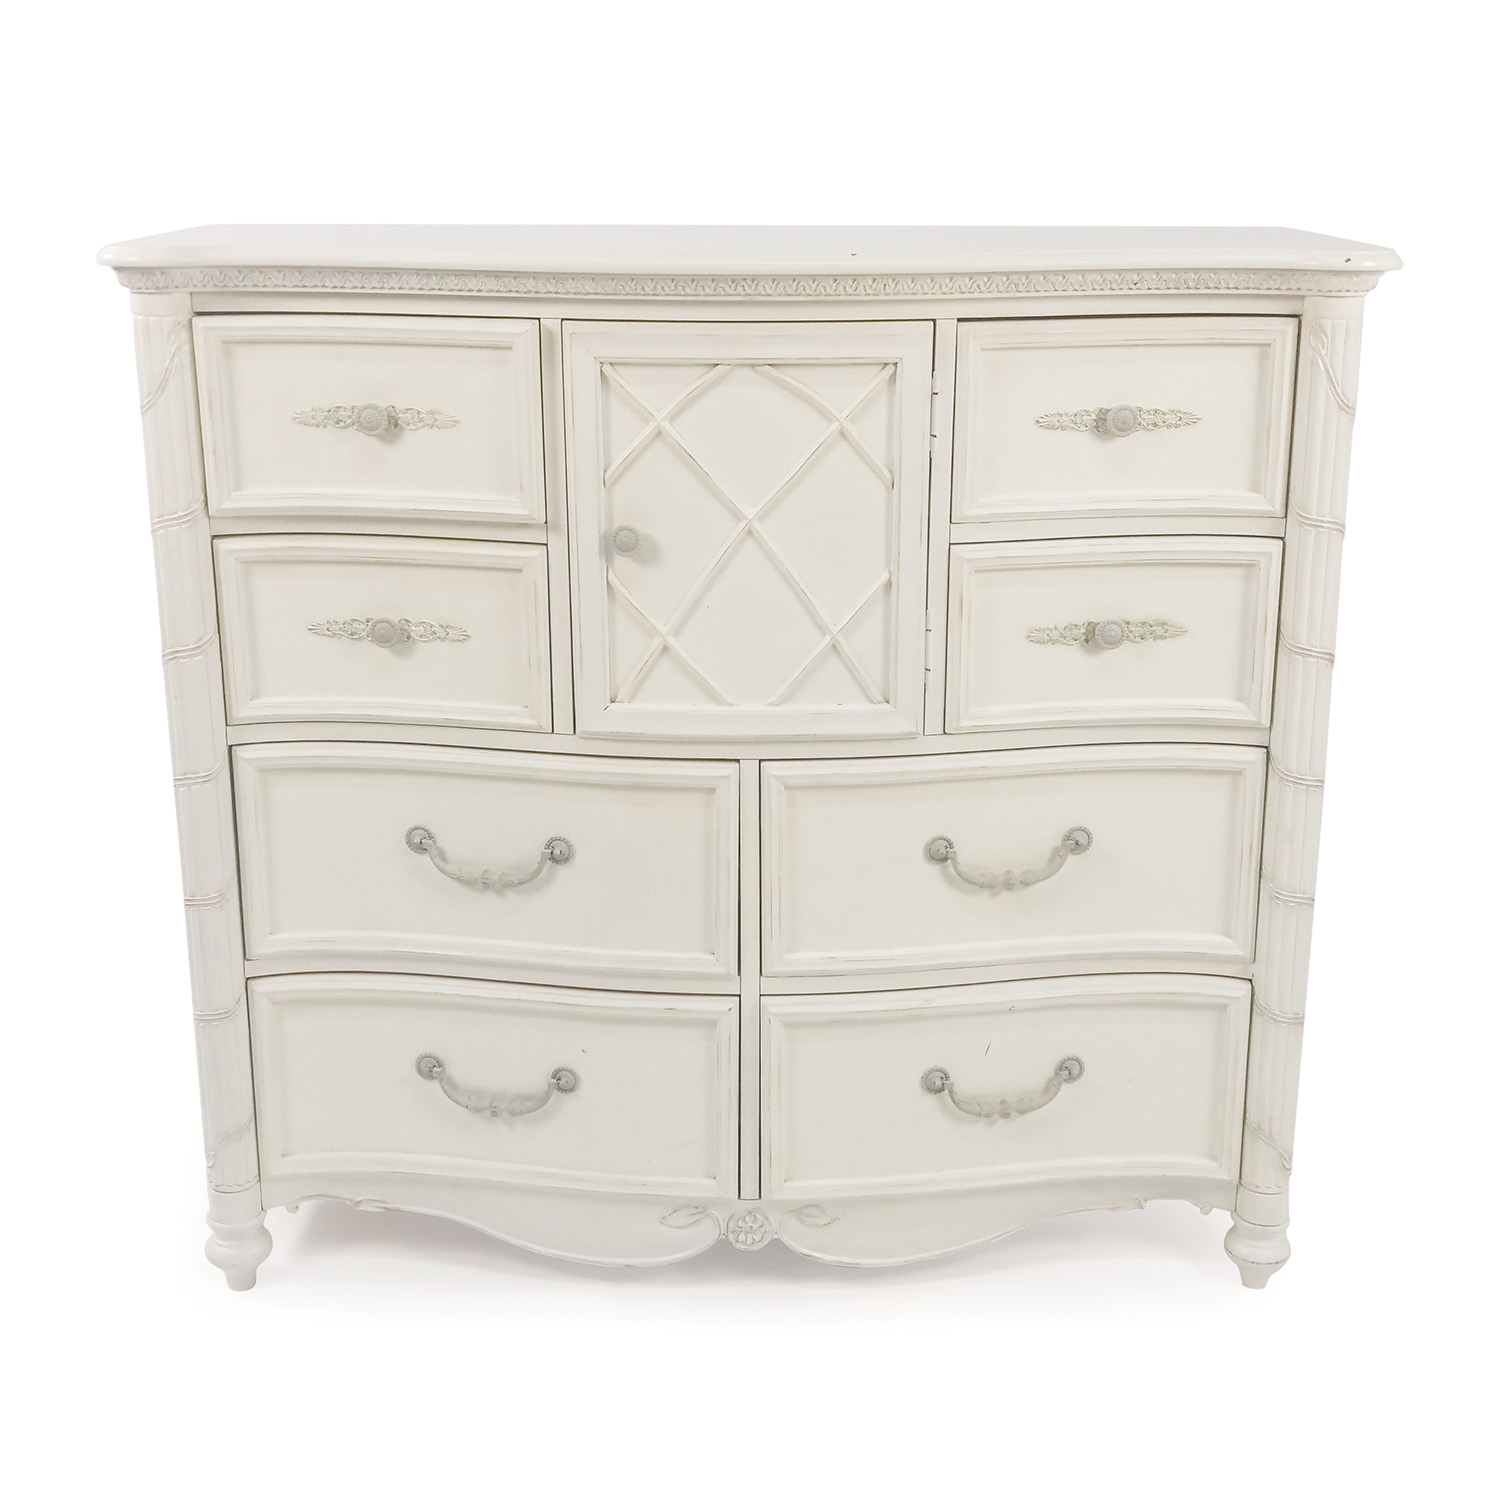 Off White Dresser White Dresser for sale